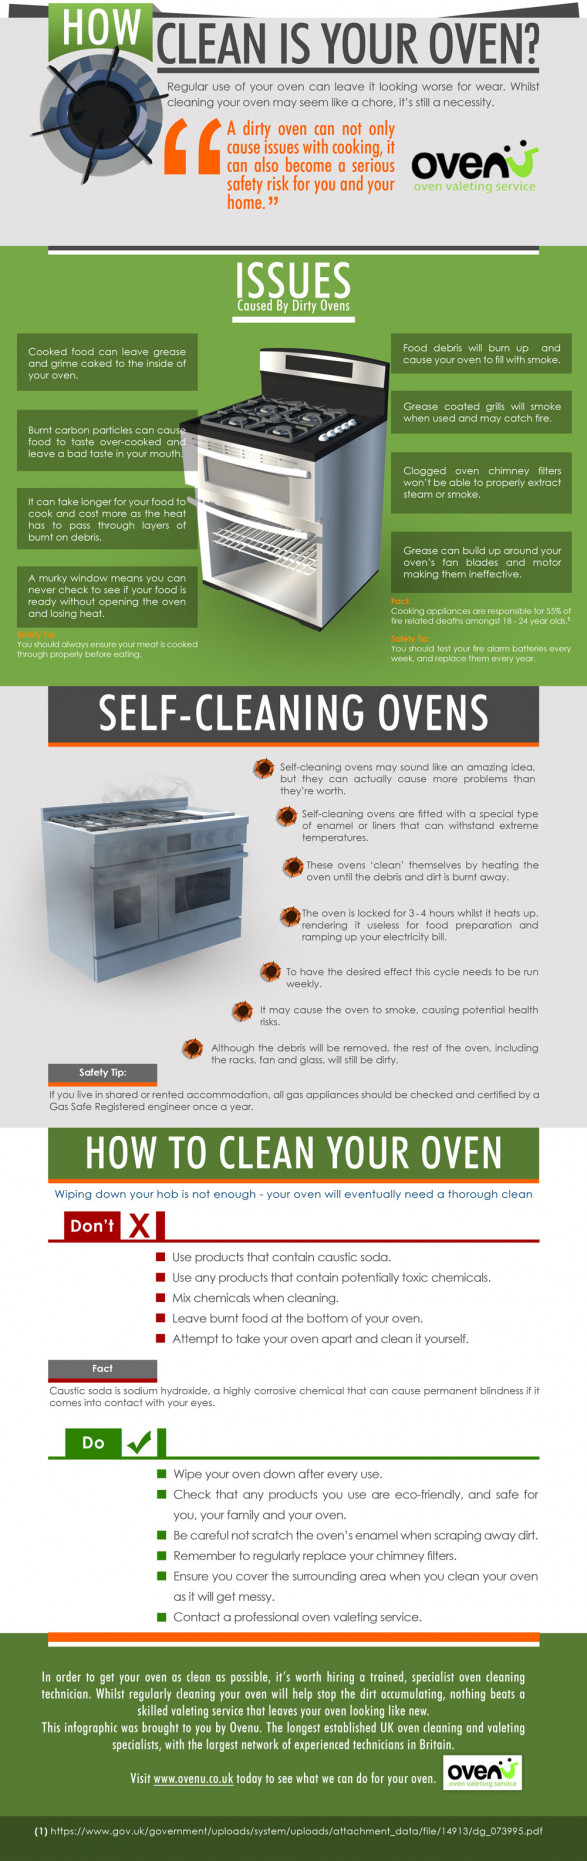 How Clean Is Your Oven?